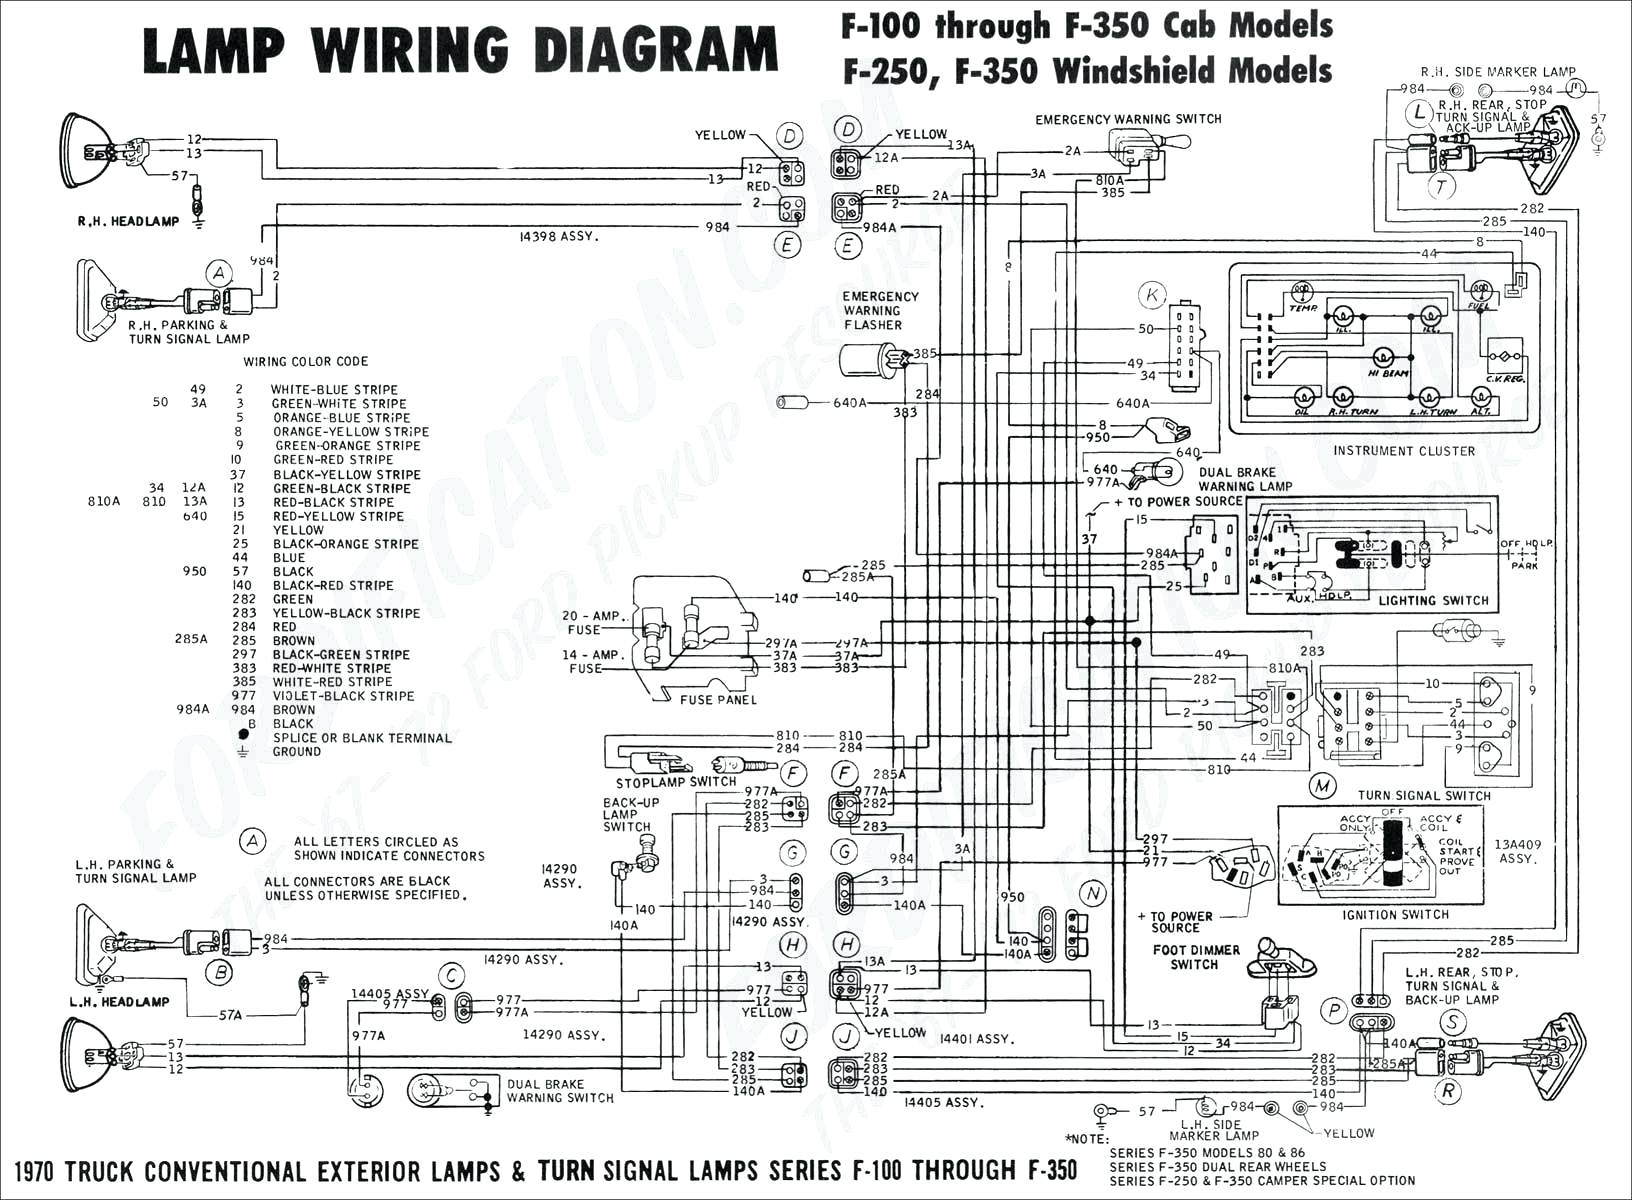 Cove Spa Wiring Diagram | Wiring Diagram Jacuzzi Wiring Diagram on